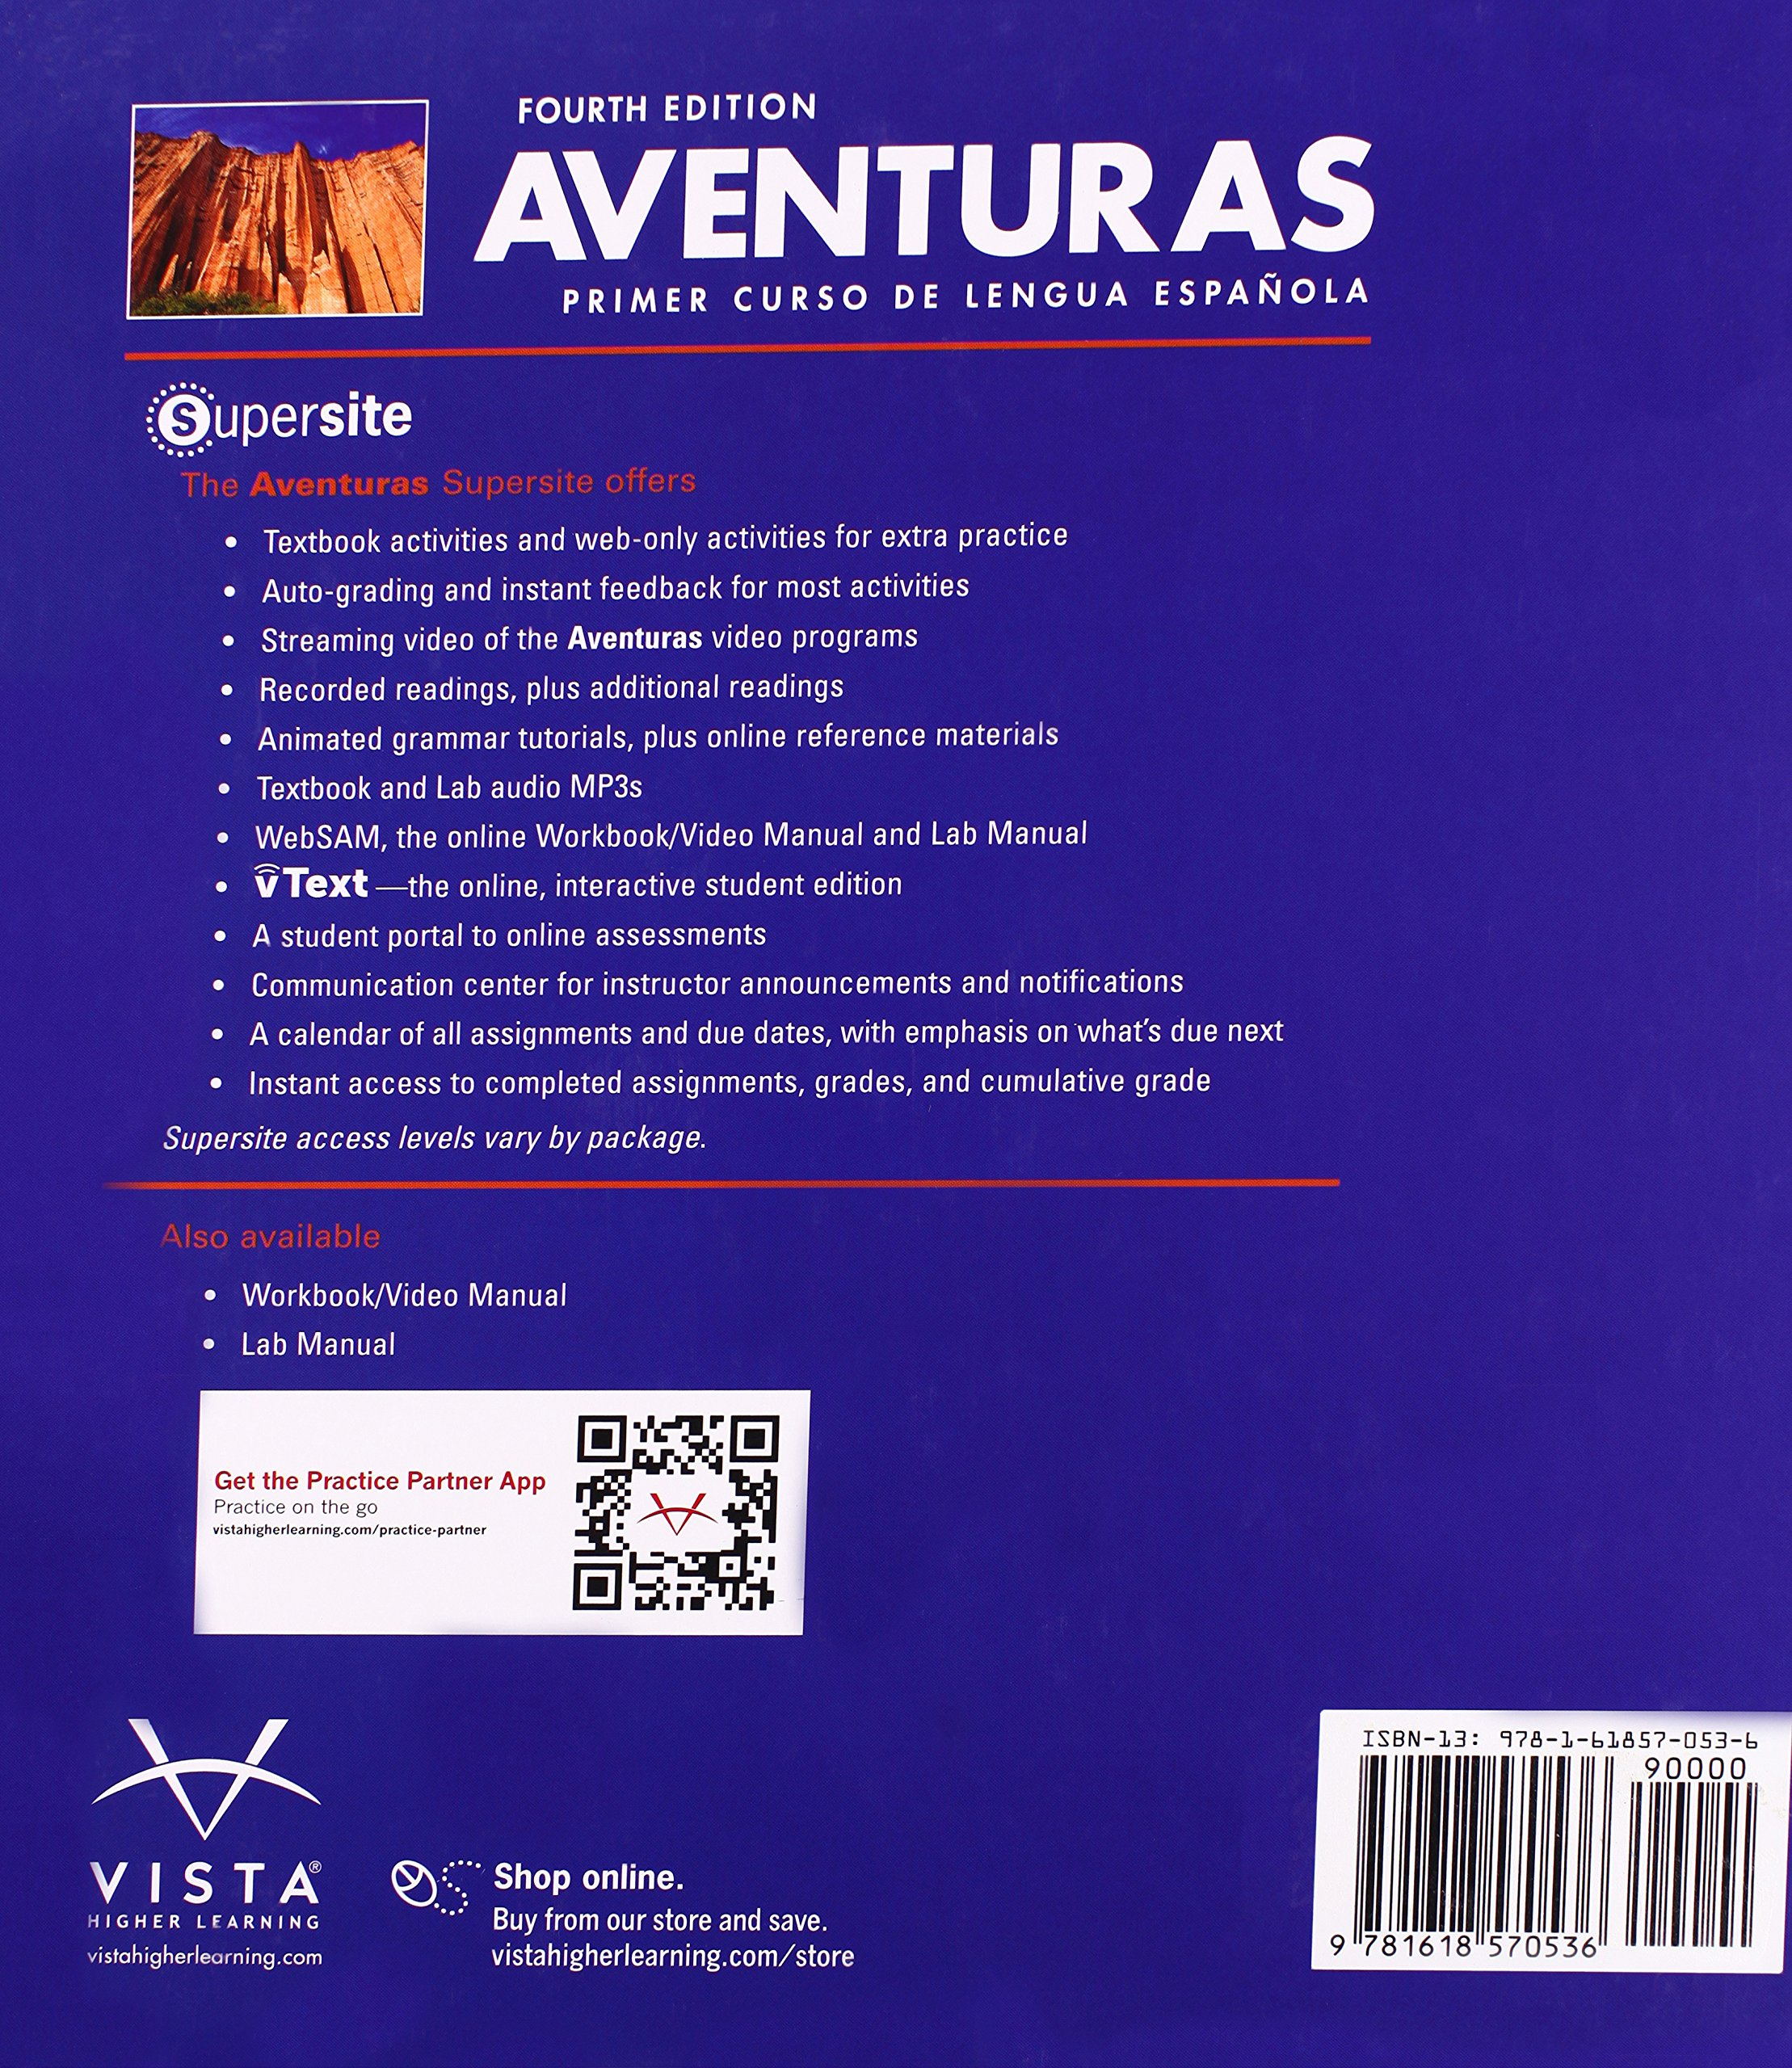 Aventuras text only vista higher learning 9781618570536 amazon aventuras text only vista higher learning 9781618570536 amazon books fandeluxe Choice Image